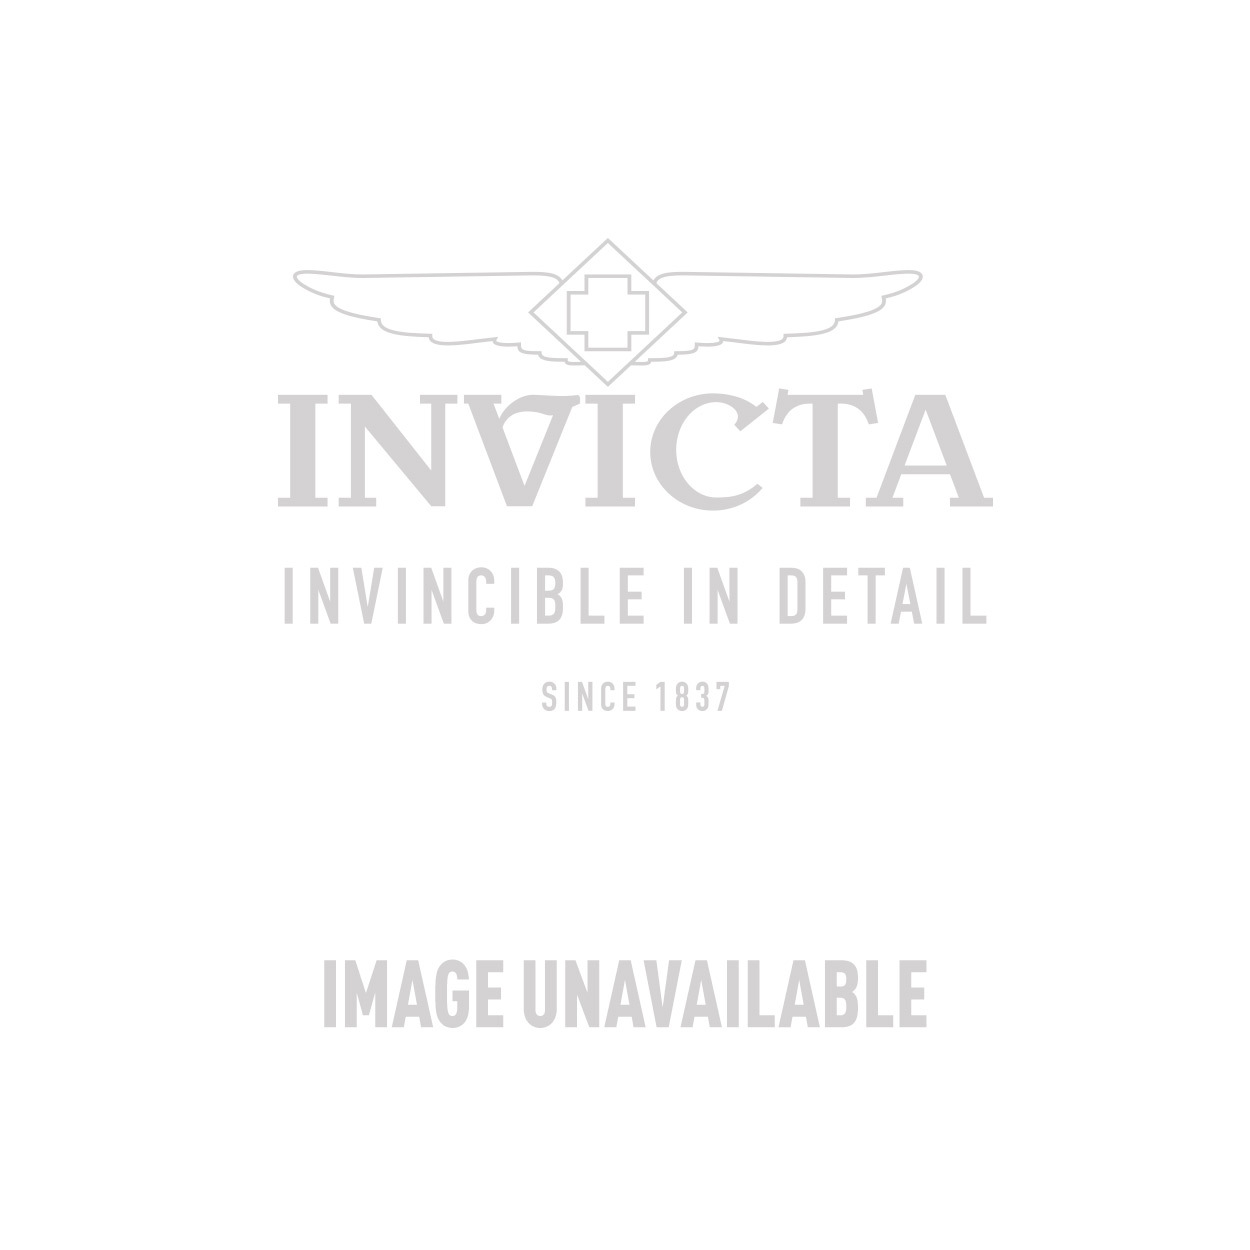 Invicta Coalition Forces Swiss Made Quartz Watch - Black, Stainless Steel case Stainless Steel band - Model 90028